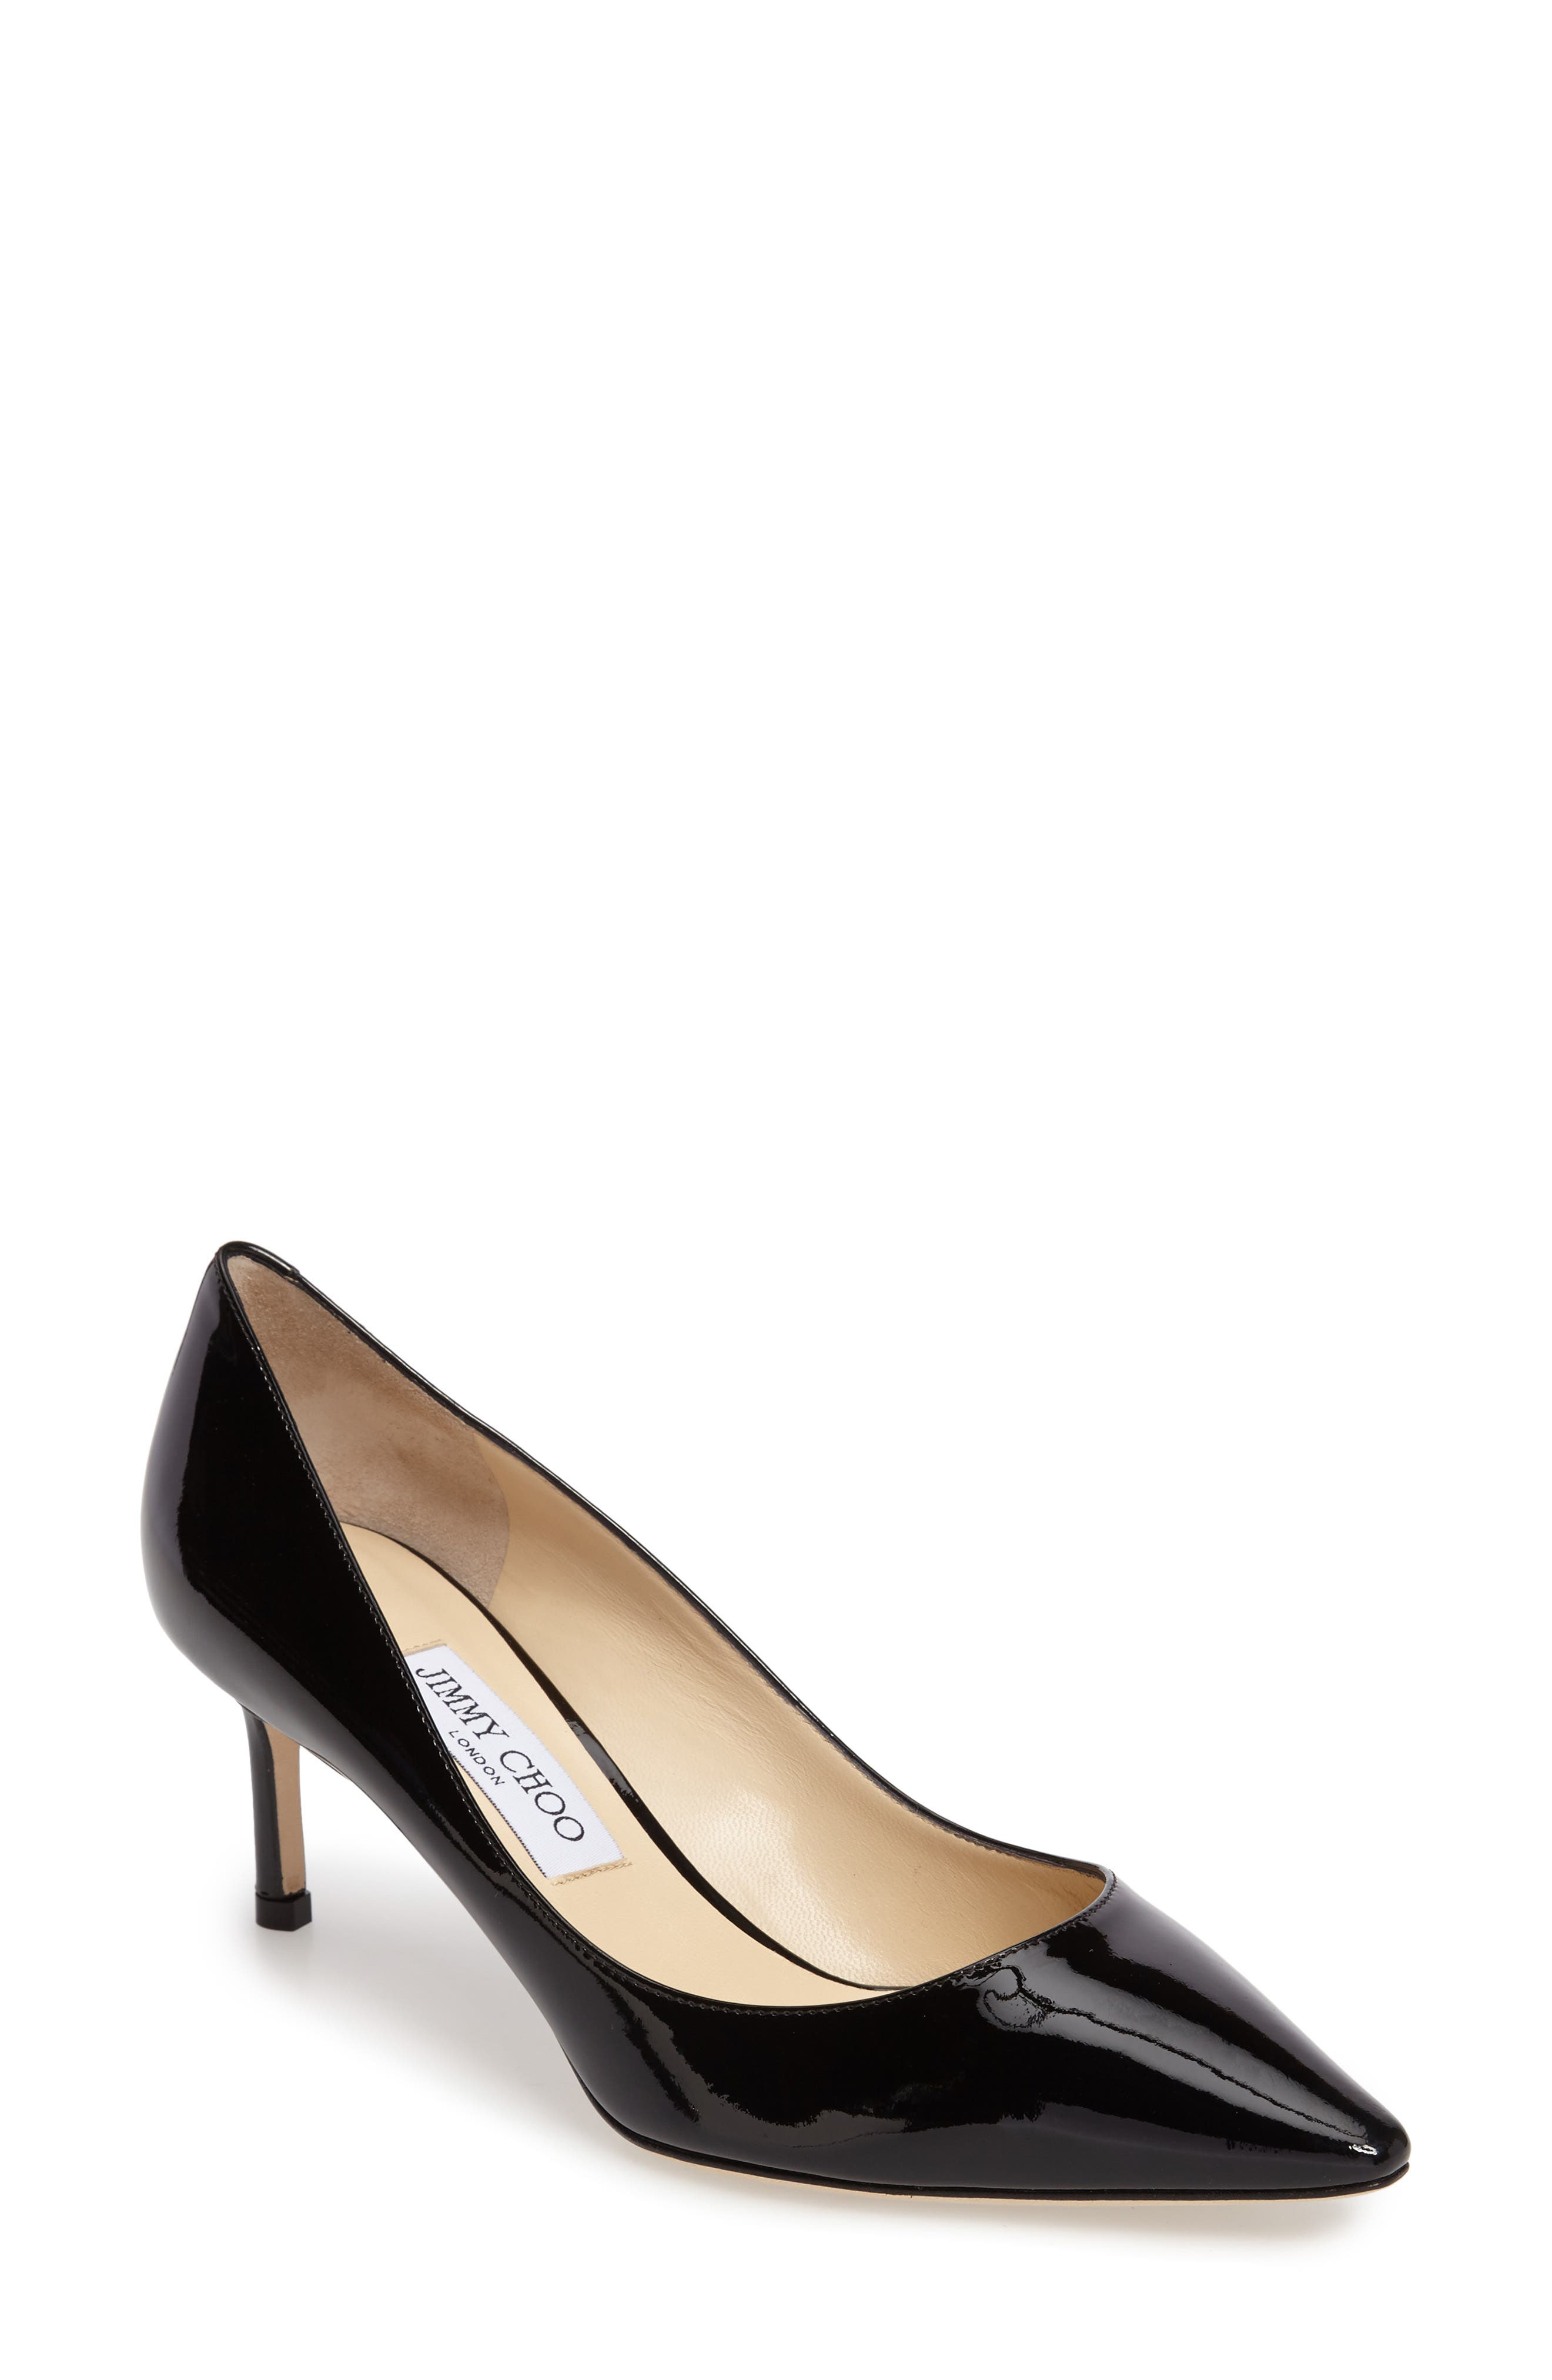 Pumps & High Heels for Women On Sale, Natural, Leather, 2017, 3.5 7.5 Jimmy Choo London